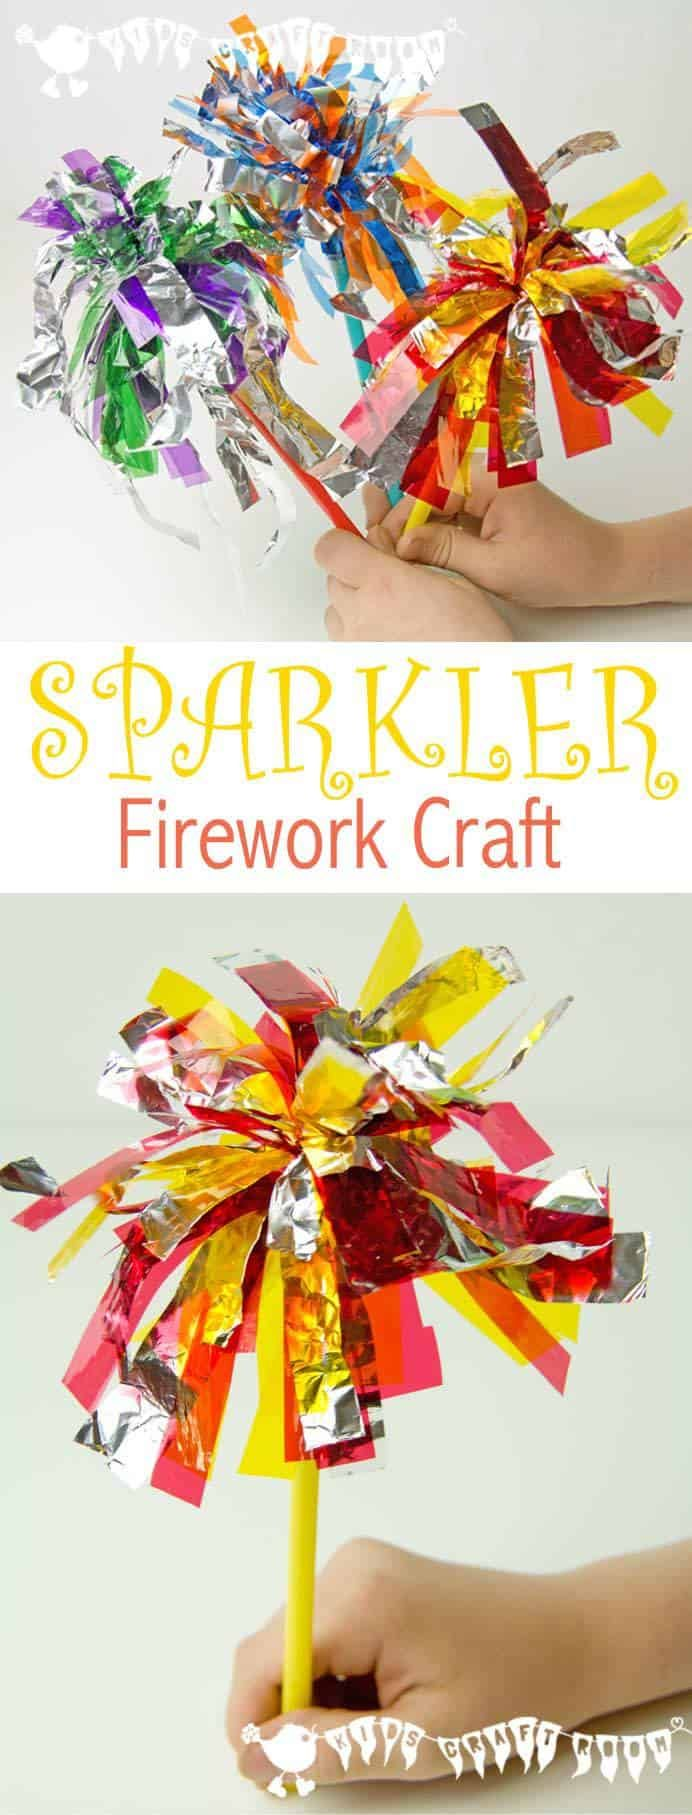 Sparkler Firework Craft For Kids - Kids Craft Room